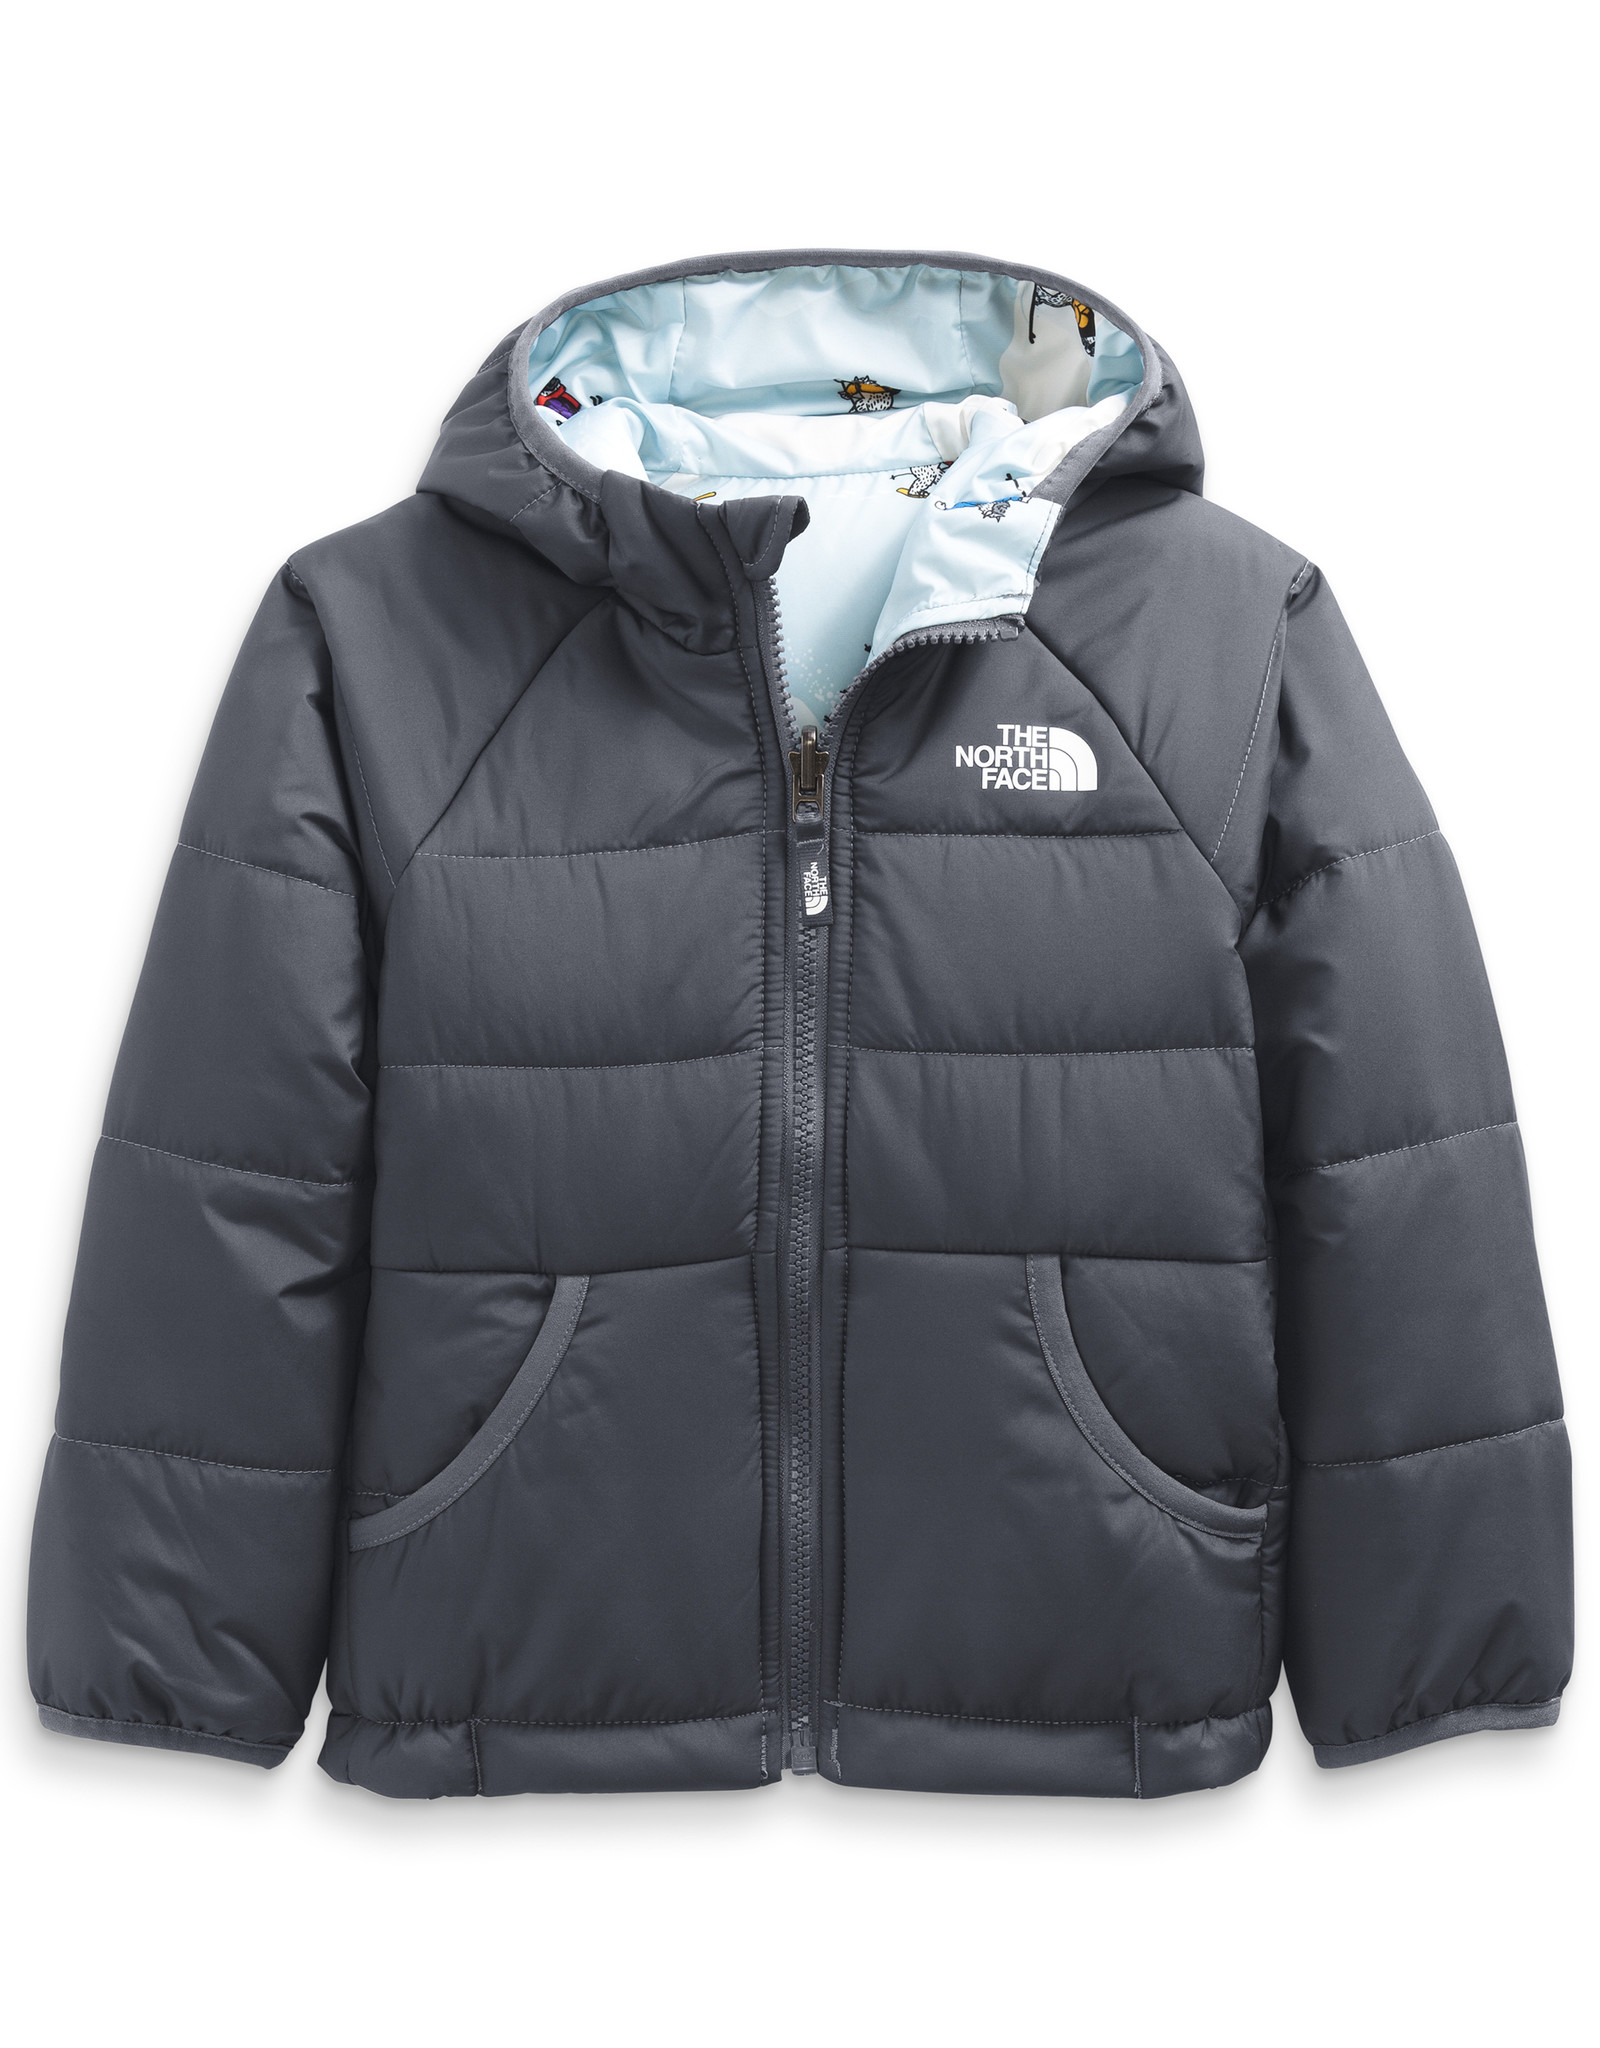 The North Face The North Face Toddler Reversible Perrito Jacket -W2022